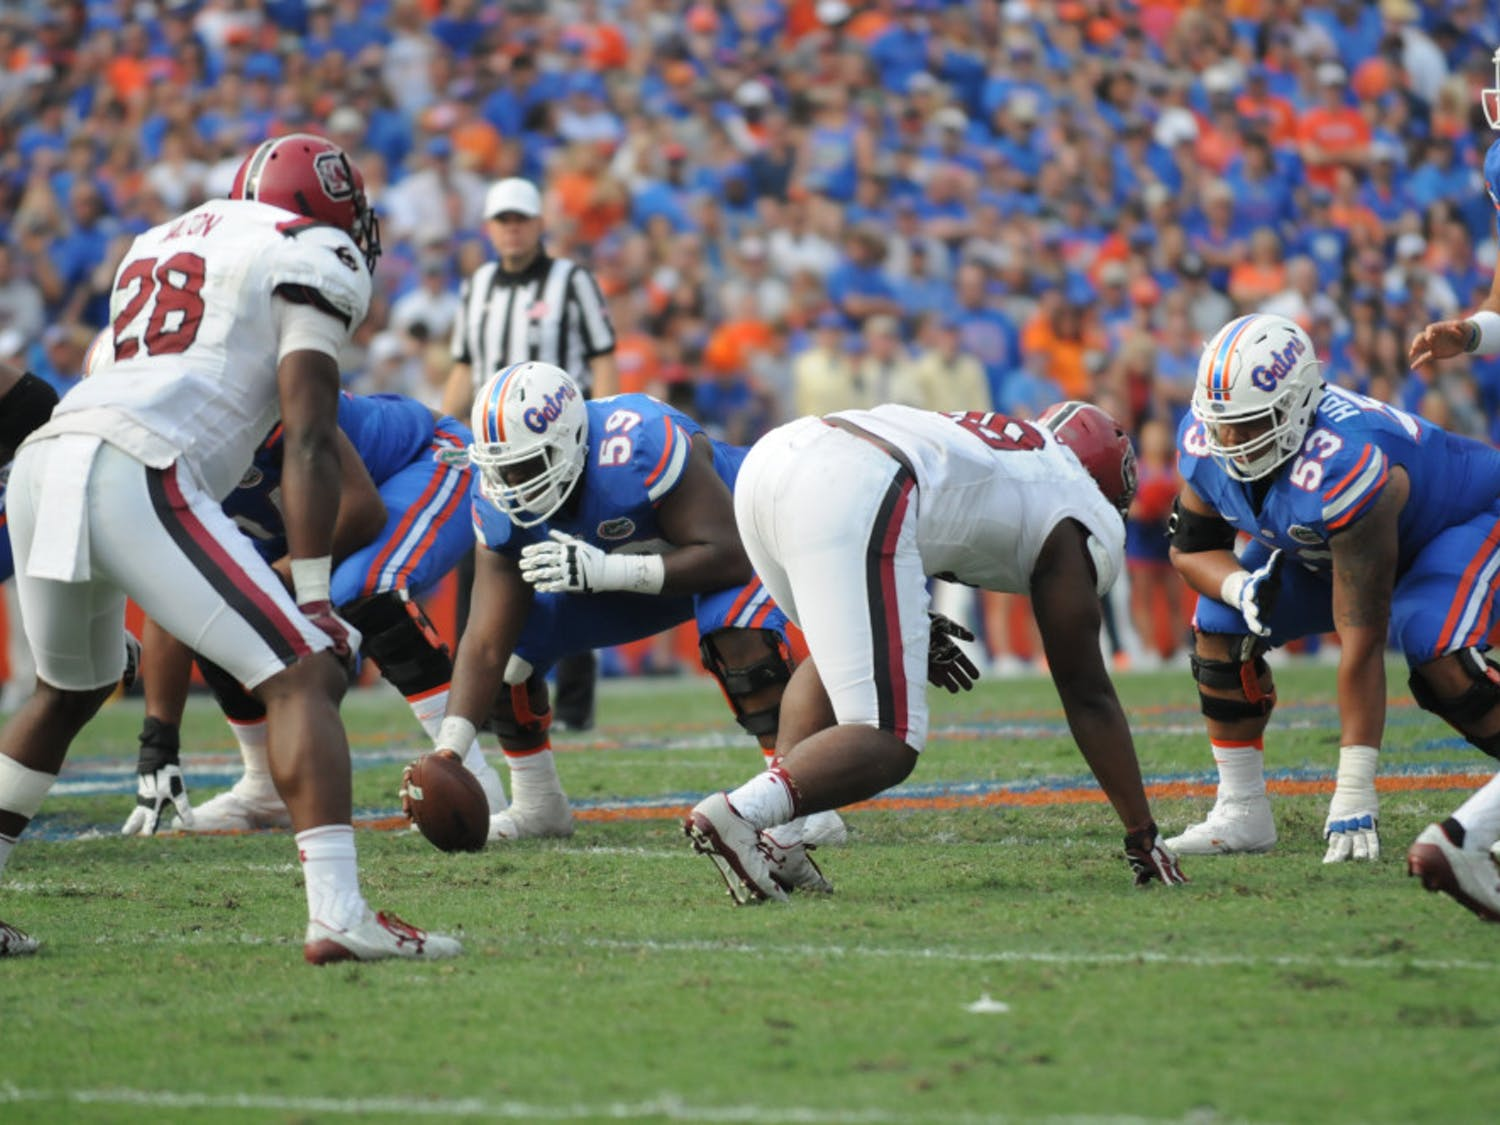 T.J. McCoy (59) prepares to snap the ball during Florida's win against South Carolina on Nov. 12, 2016, at Ben Hill Griffin Stadium.